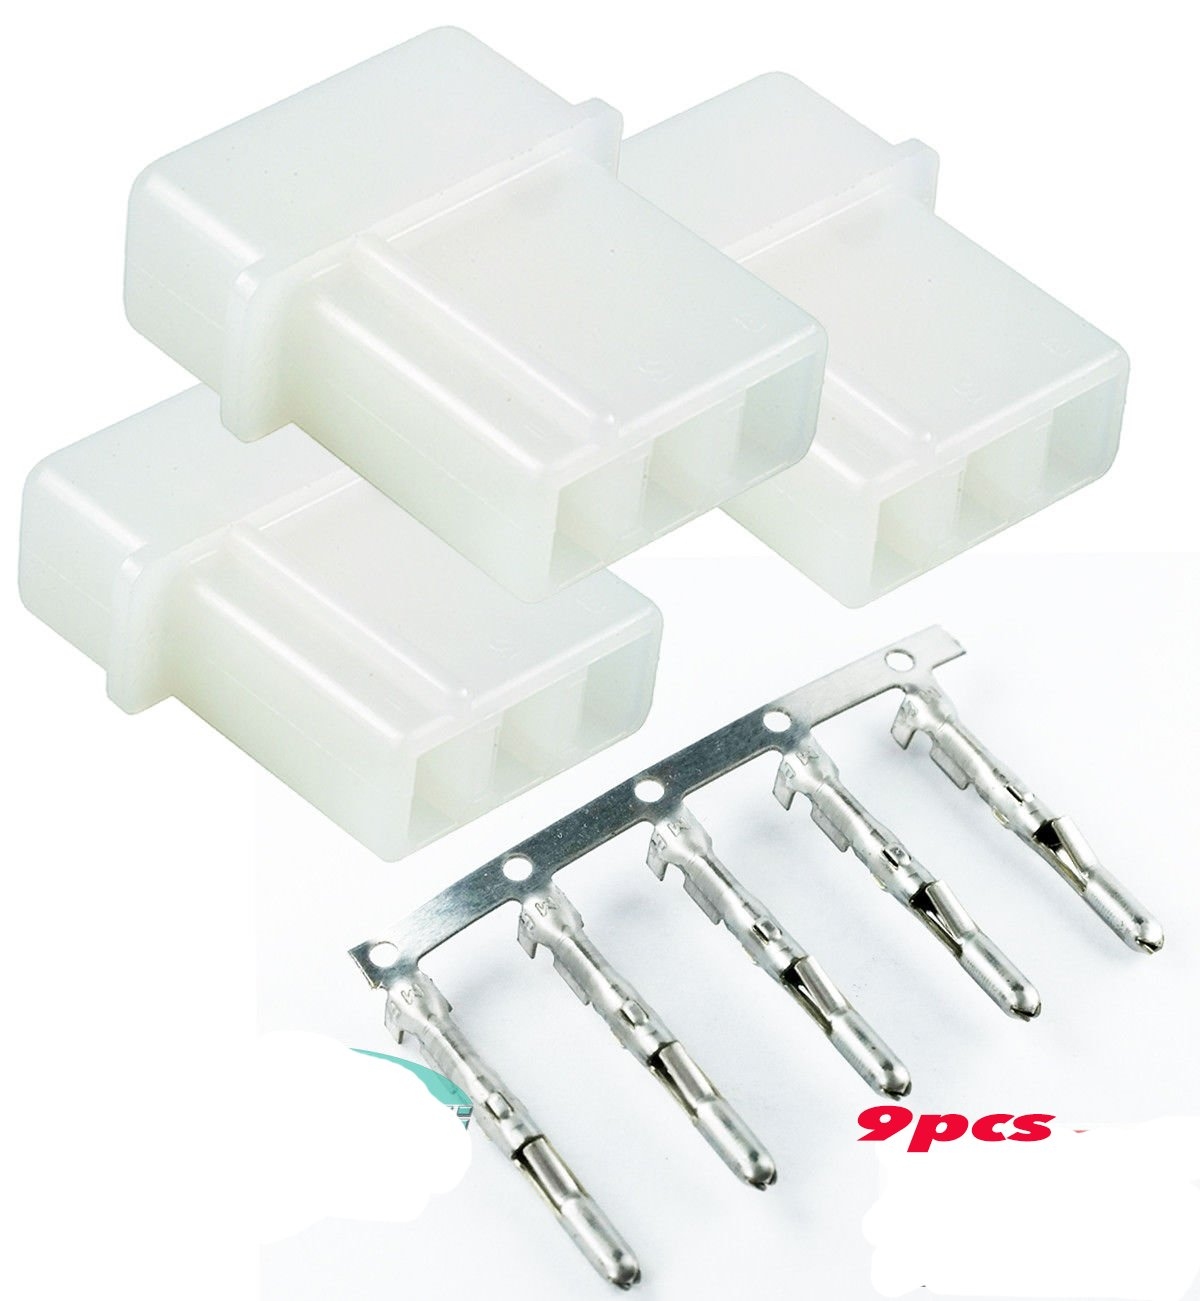 Amazon.com: Strobe 3 Pin Connector AMP Power Supply Bulb Male and Pin 3 Set  of 3 Pins (18-24 AWG Wires) for Whelen: Industrial & ScientificAmazon.com